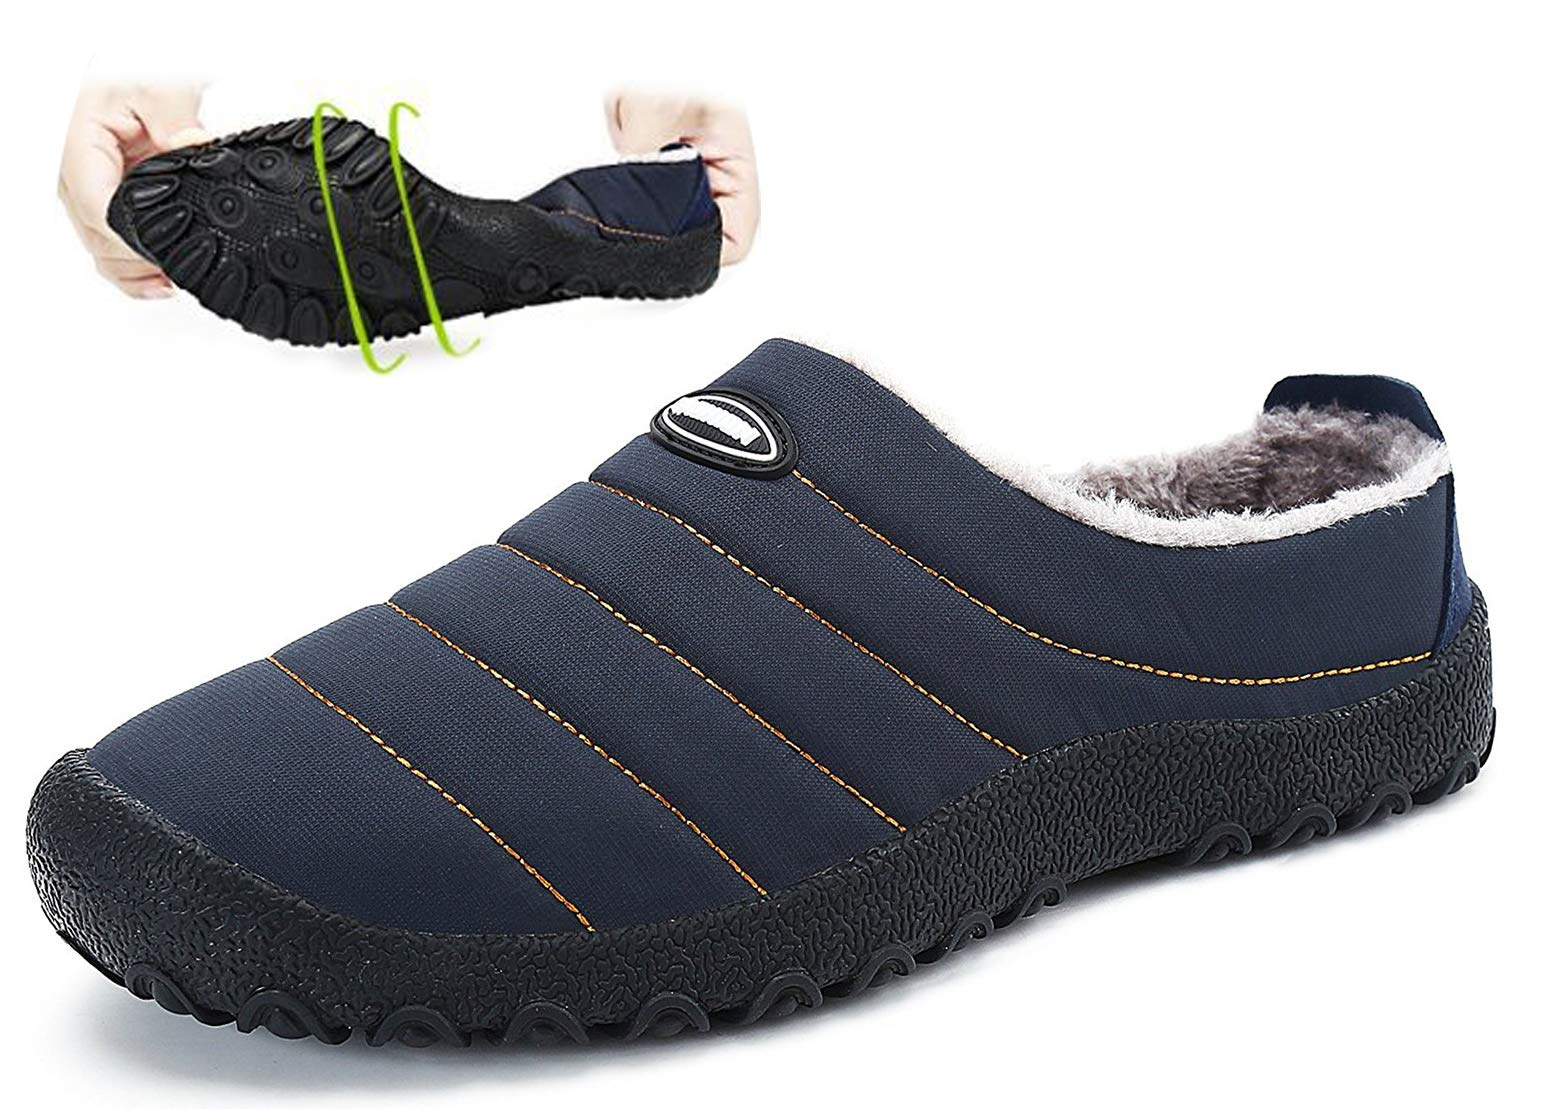 Yoobc Womens Mens Slip on Mule Slippers Winter Fur Lined Waterproof Soft Cotton Shoes